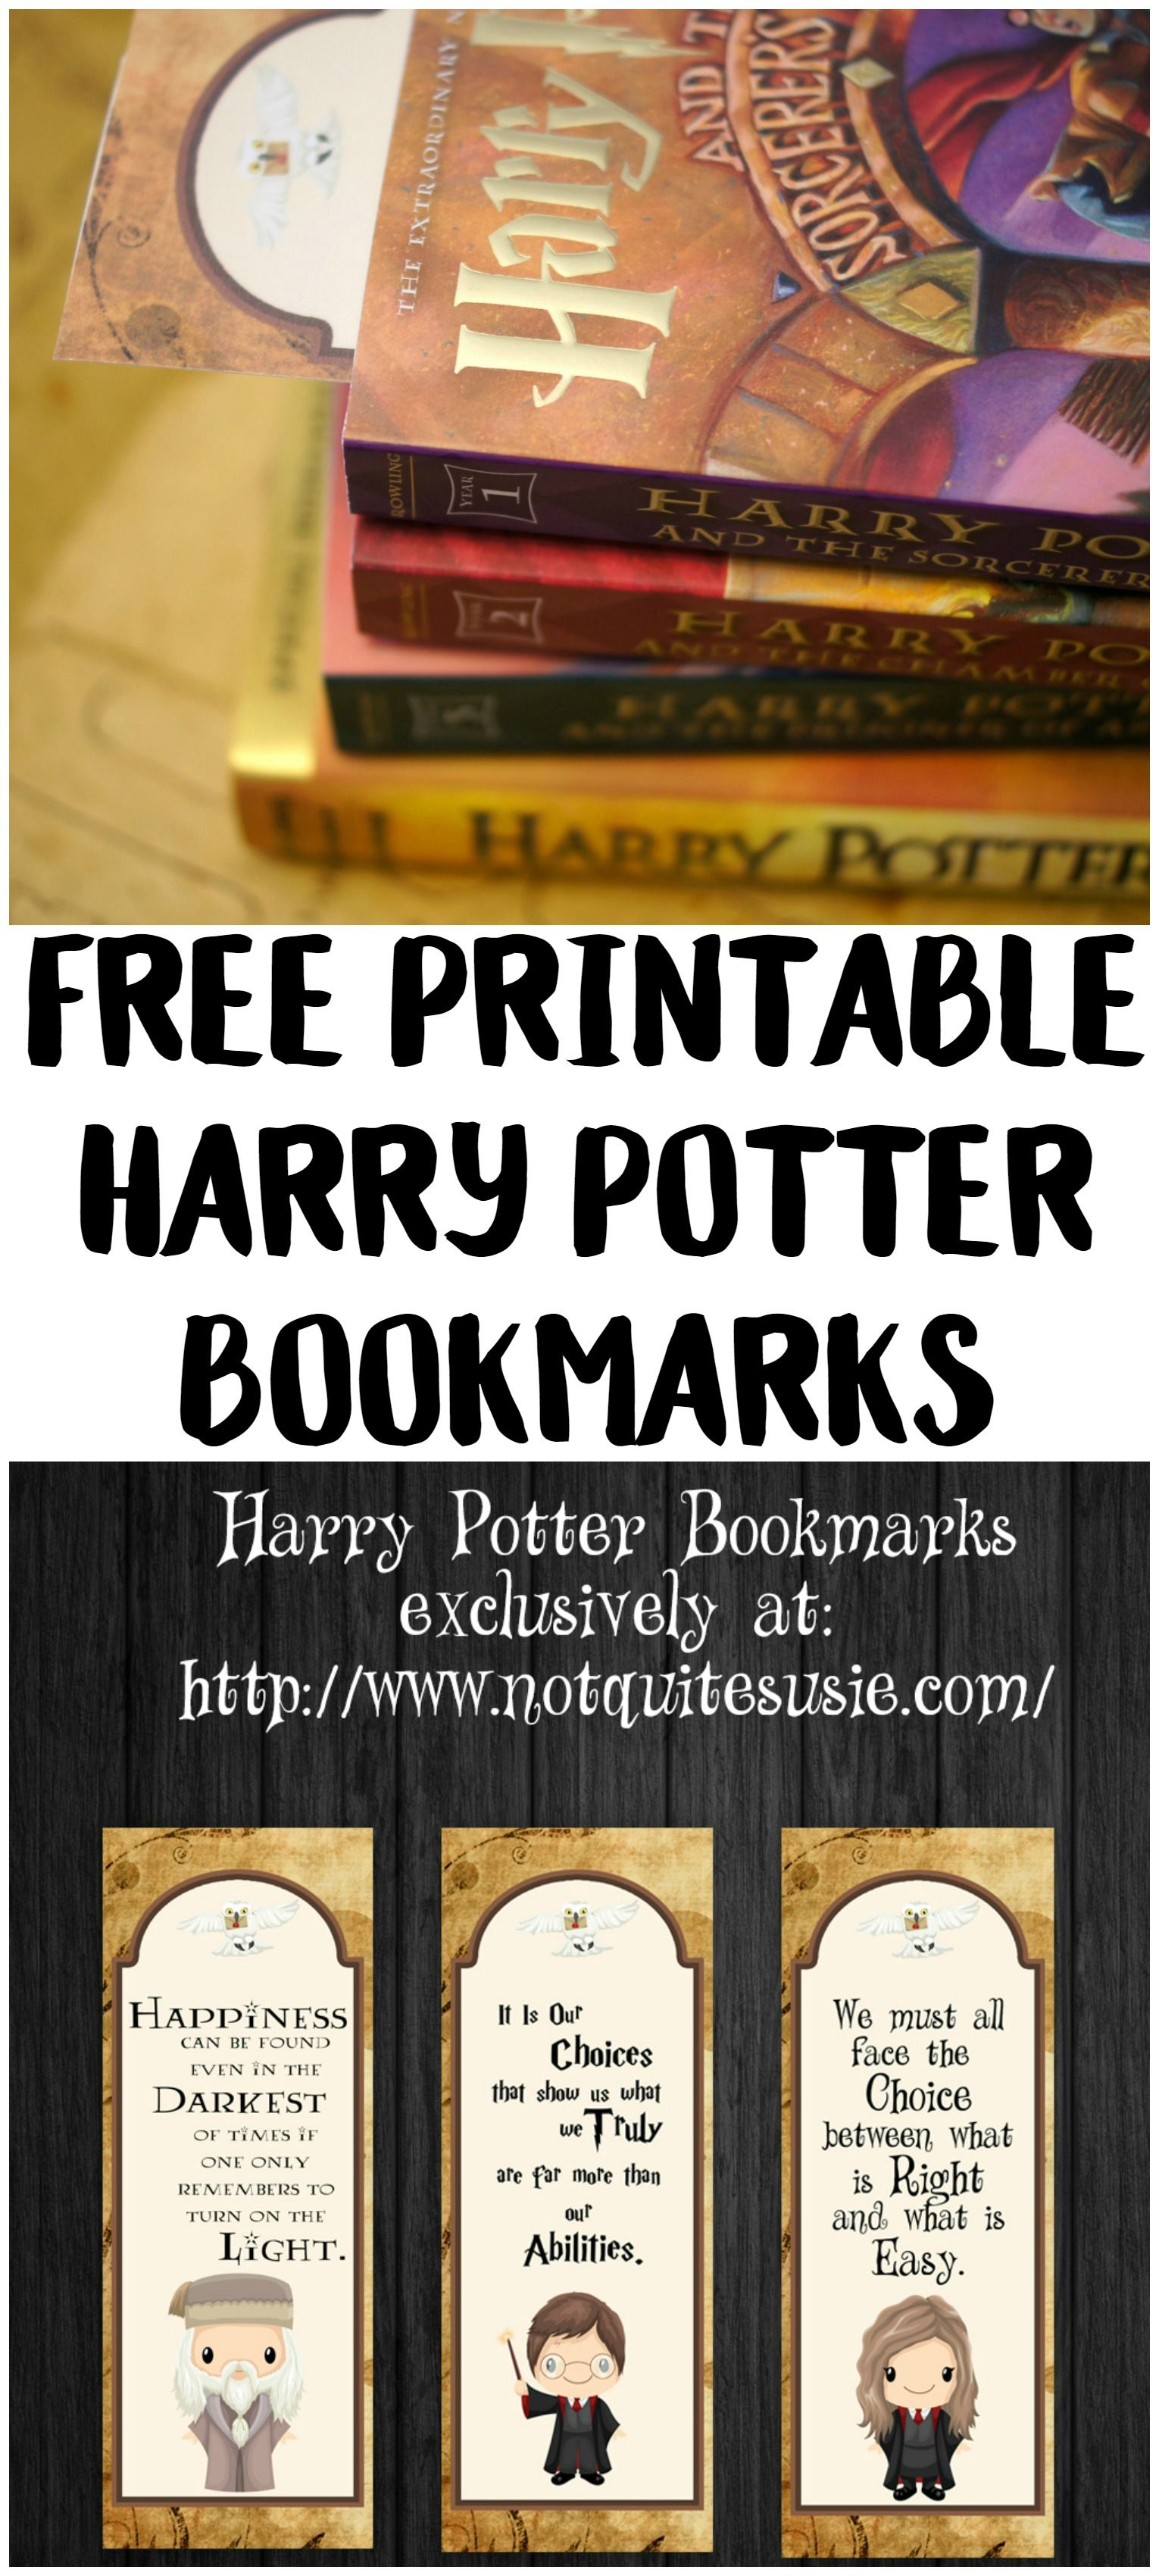 Libros De Harry Potter Online Free Printable Harry Potter Bookmarks Not Quite Susie